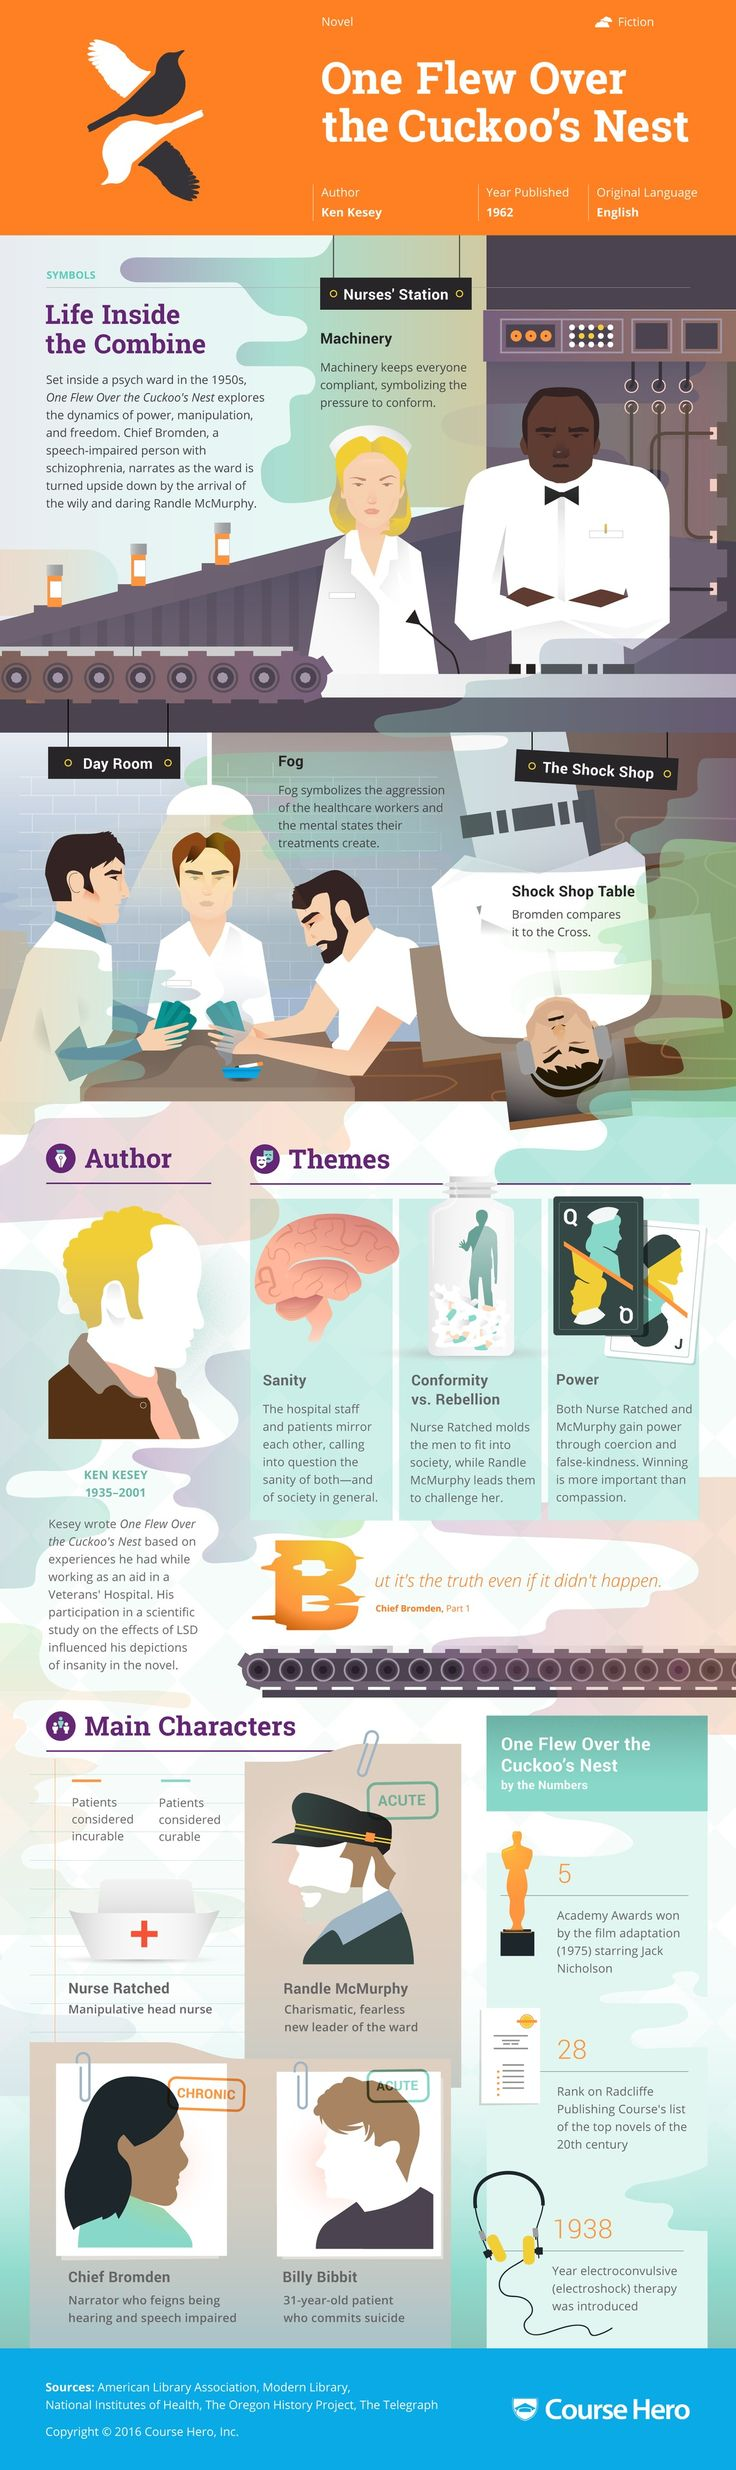 17 best images about literature gcse english to one flew over the cuckoo s nest infographic course hero